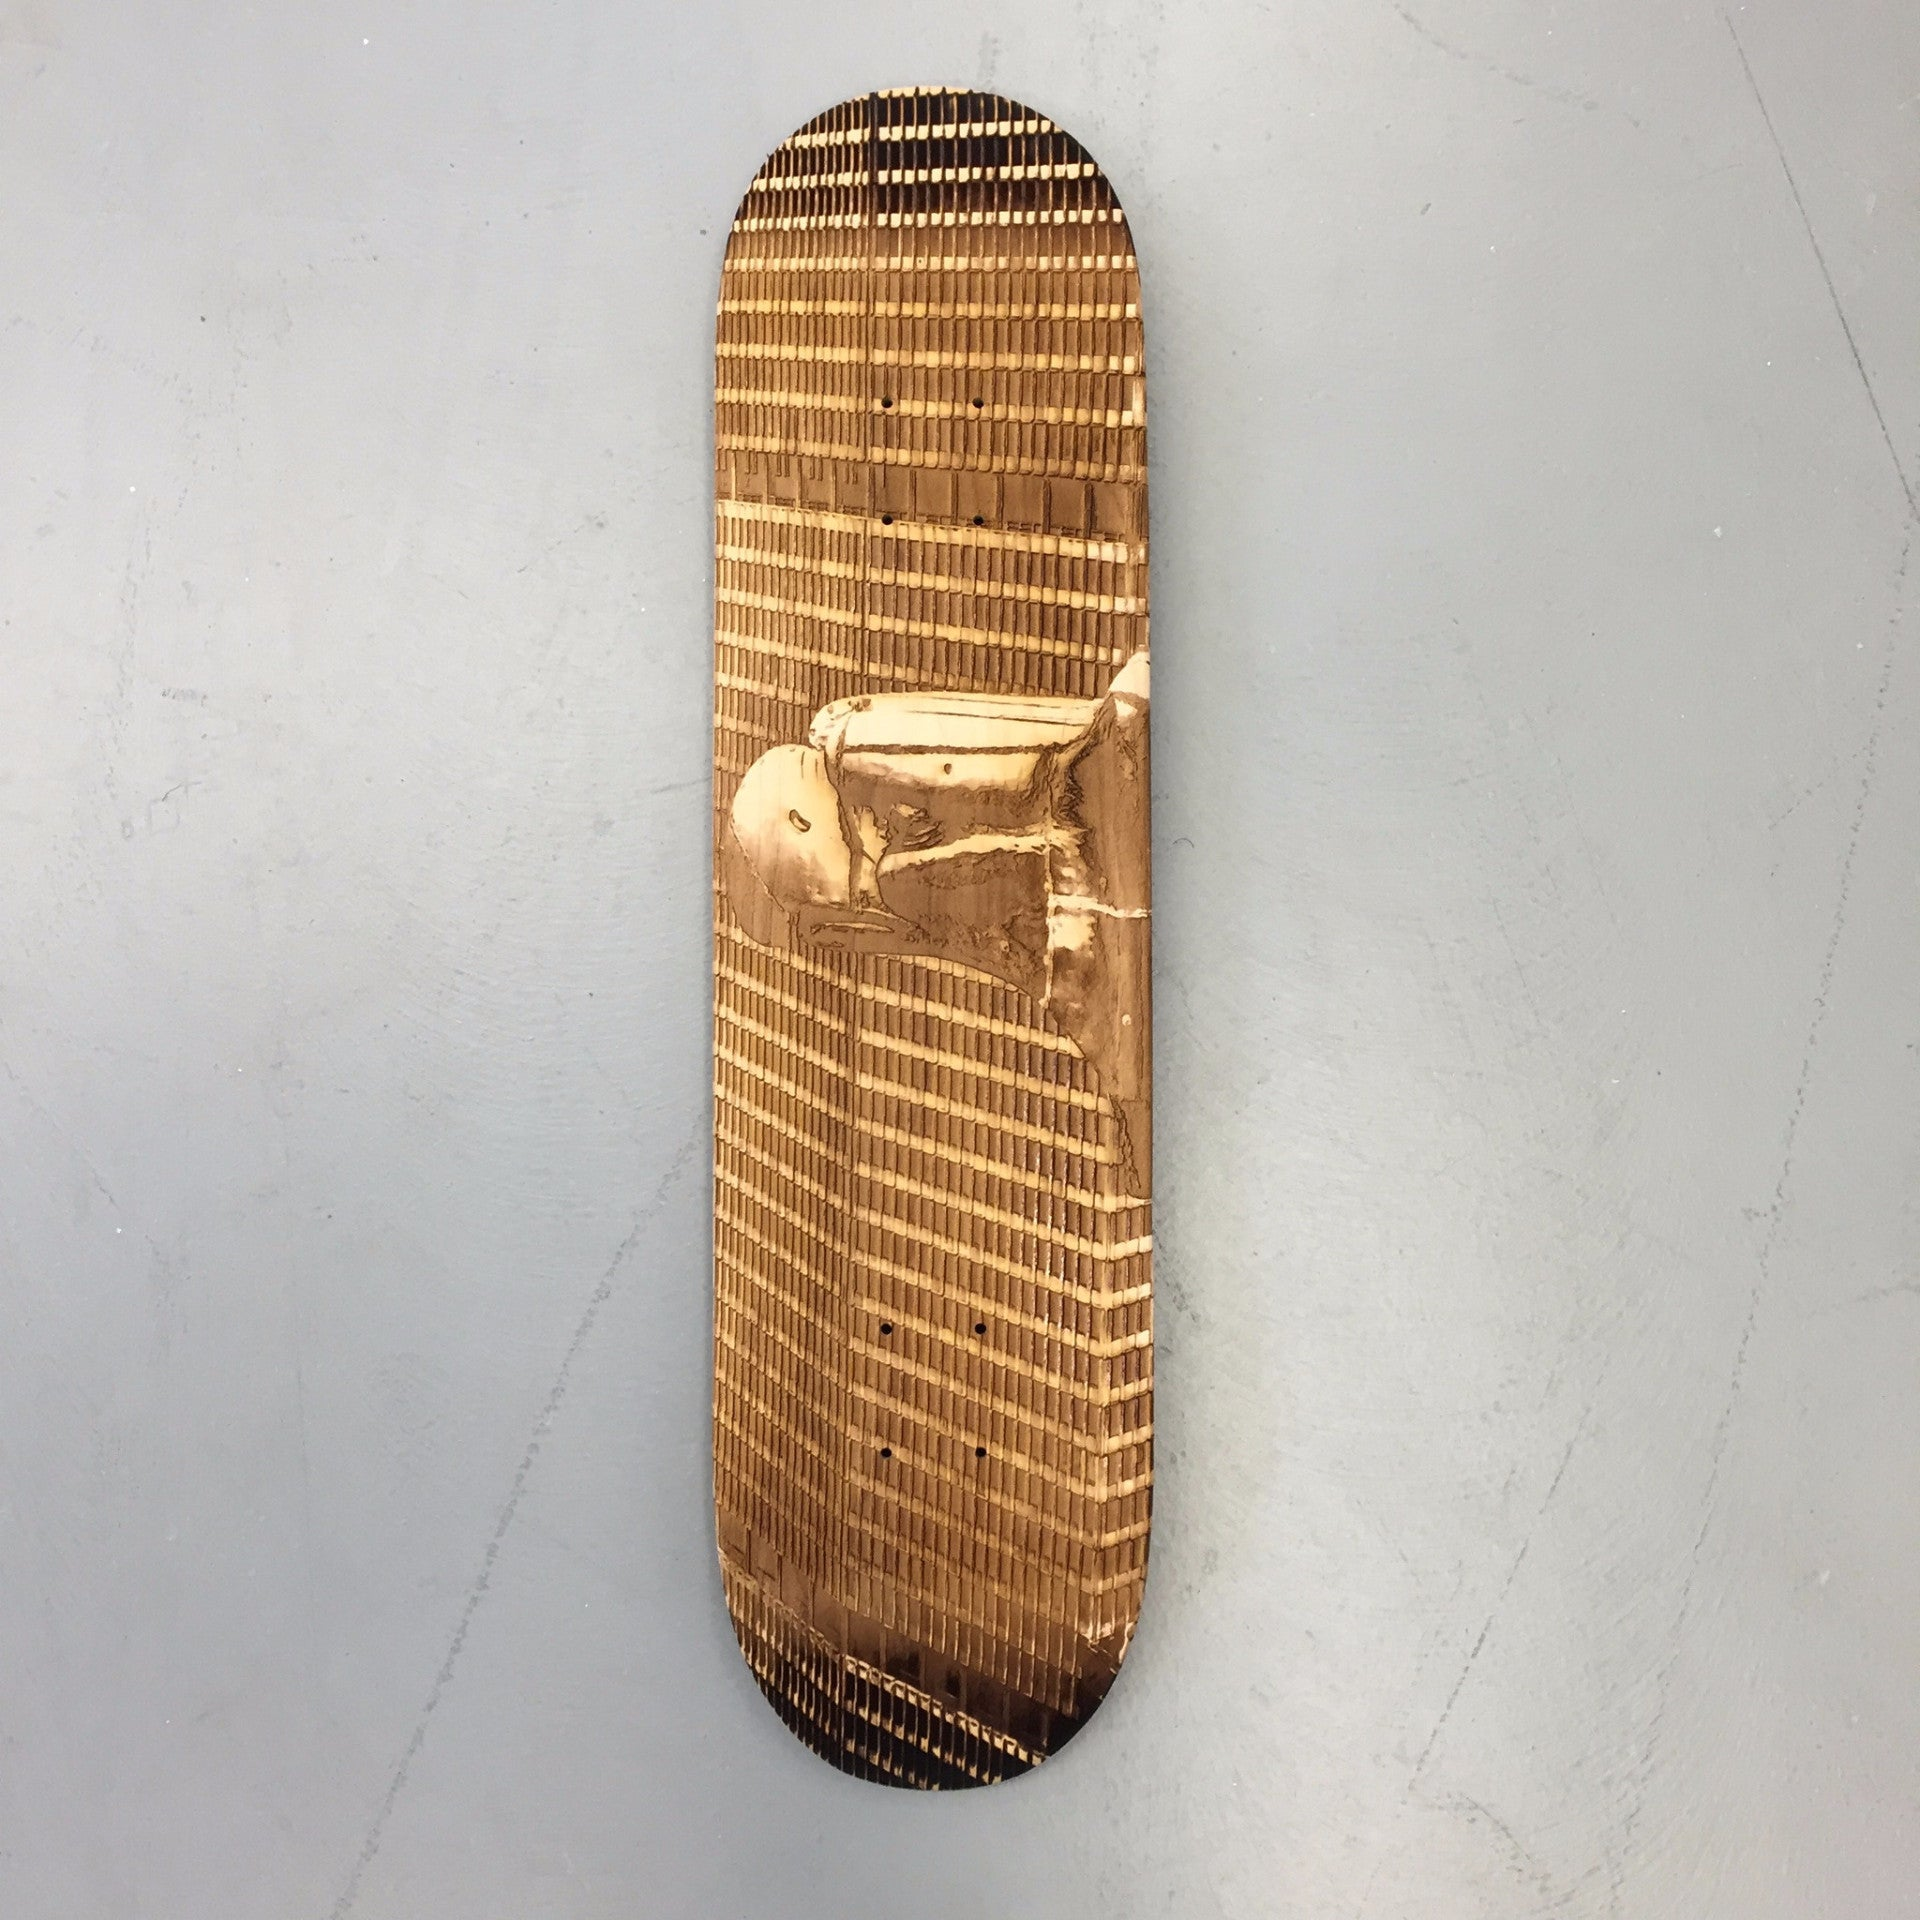 Chrysler Building Eagle Skateboard Deck